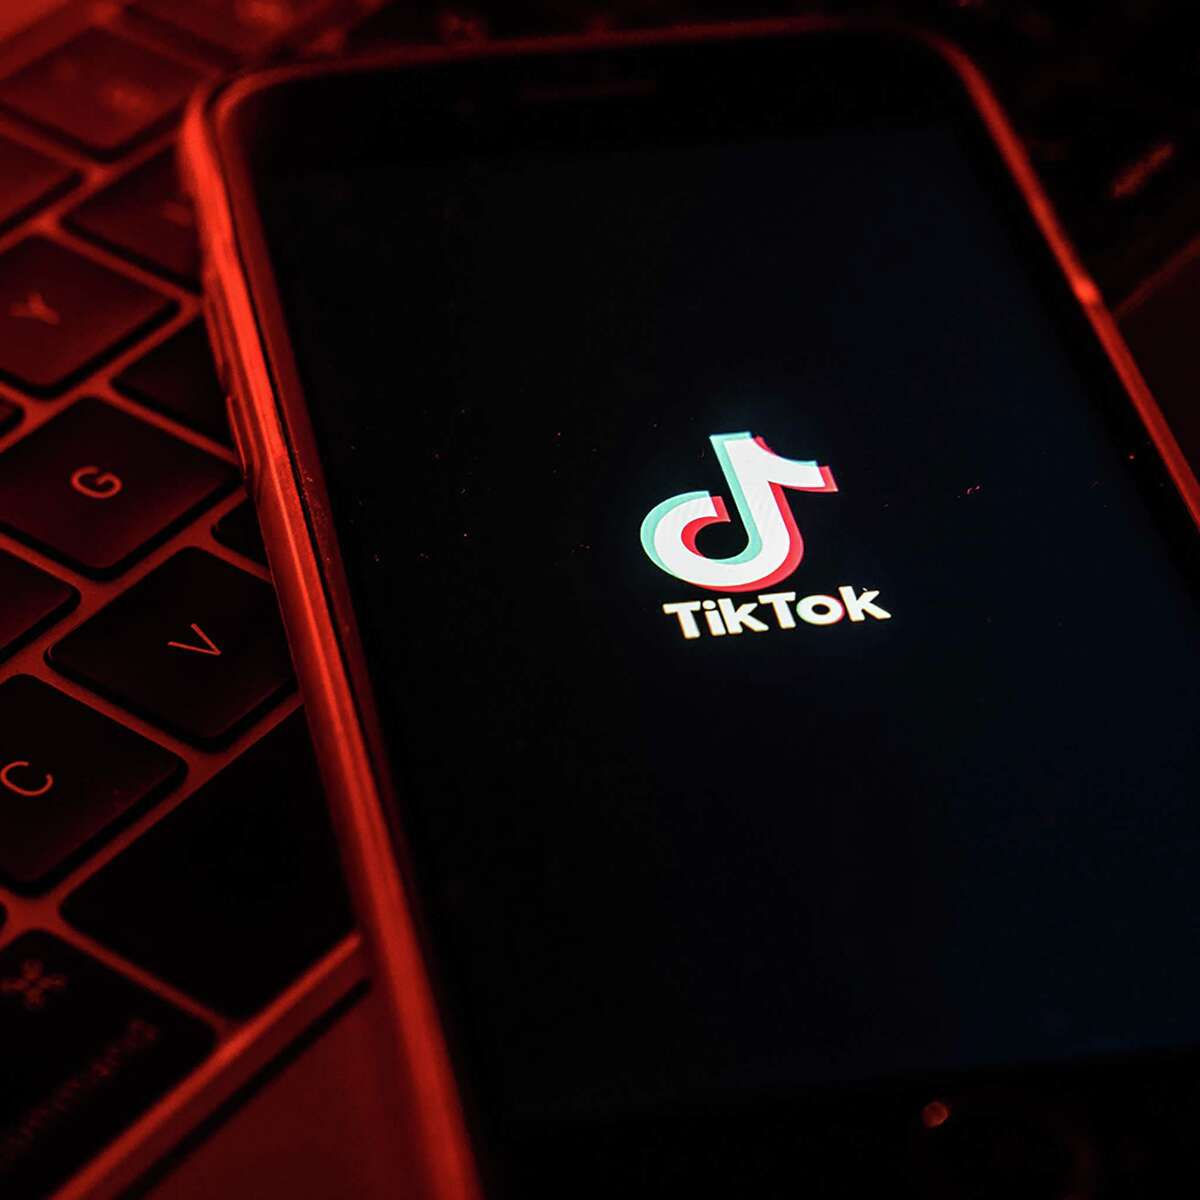 The logo for the TikTok app on a smartphone on July 7, 2020.